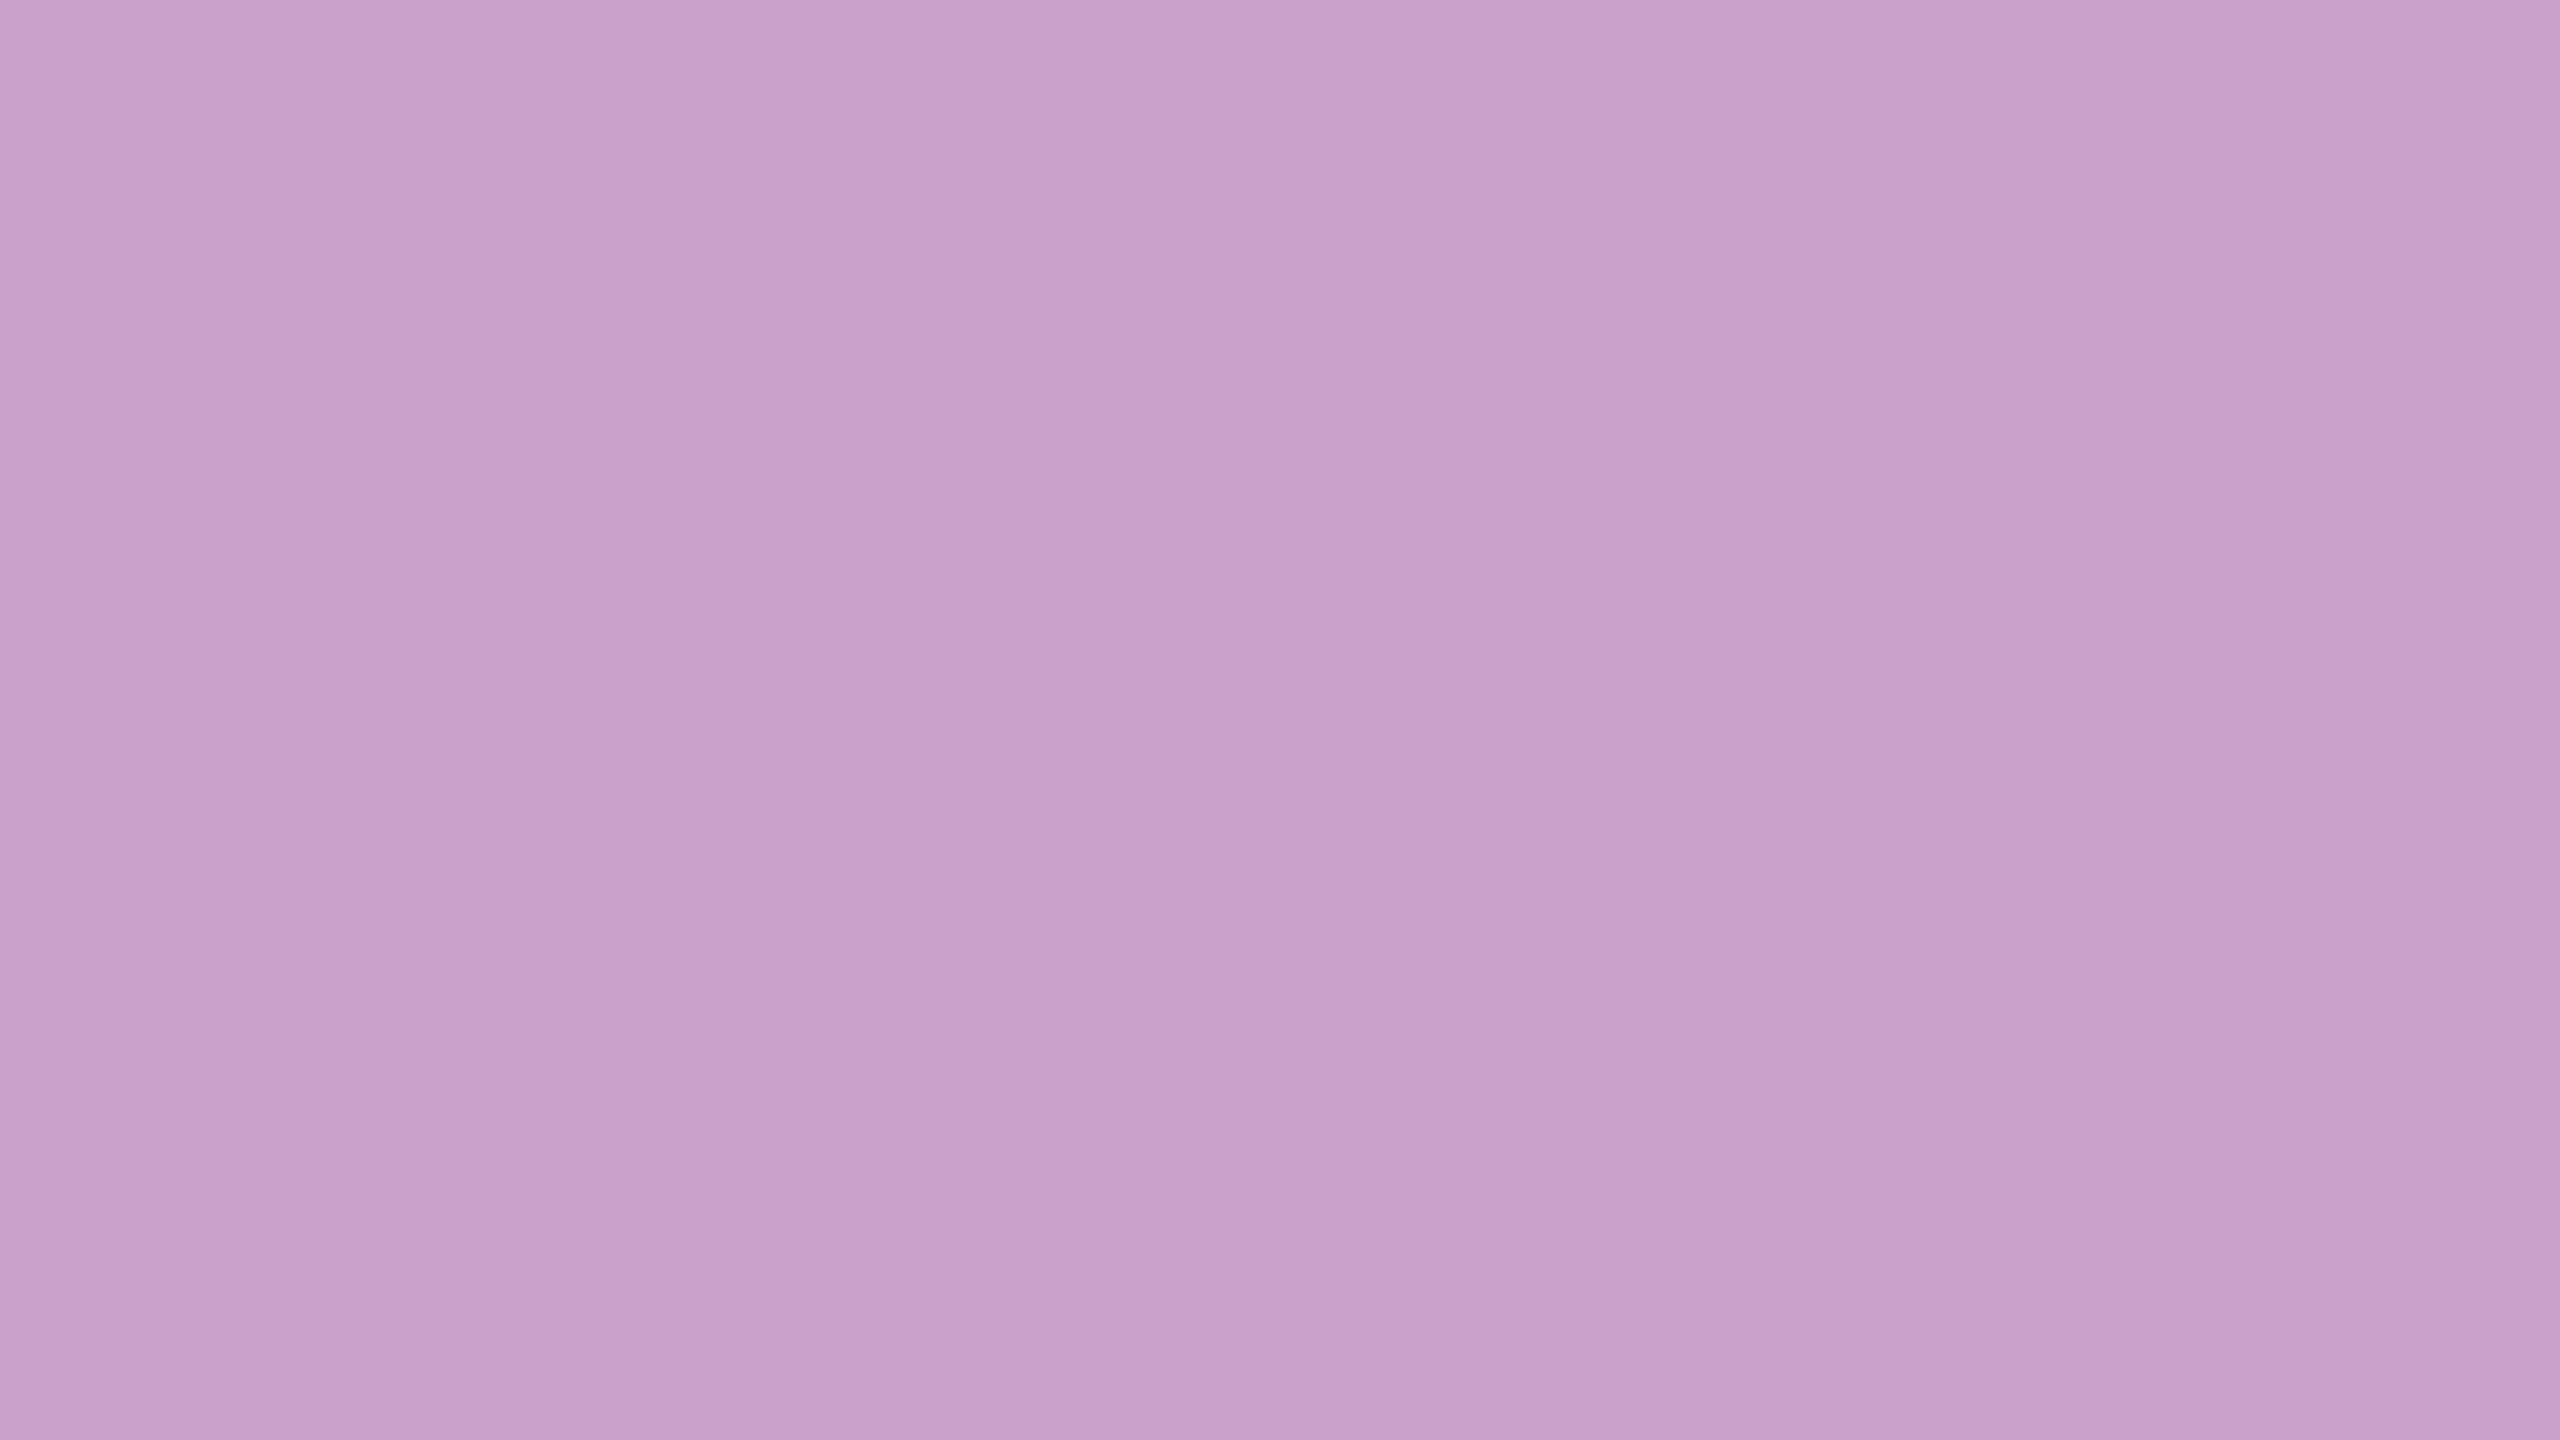 2560x1440 Lilac Solid Color Background